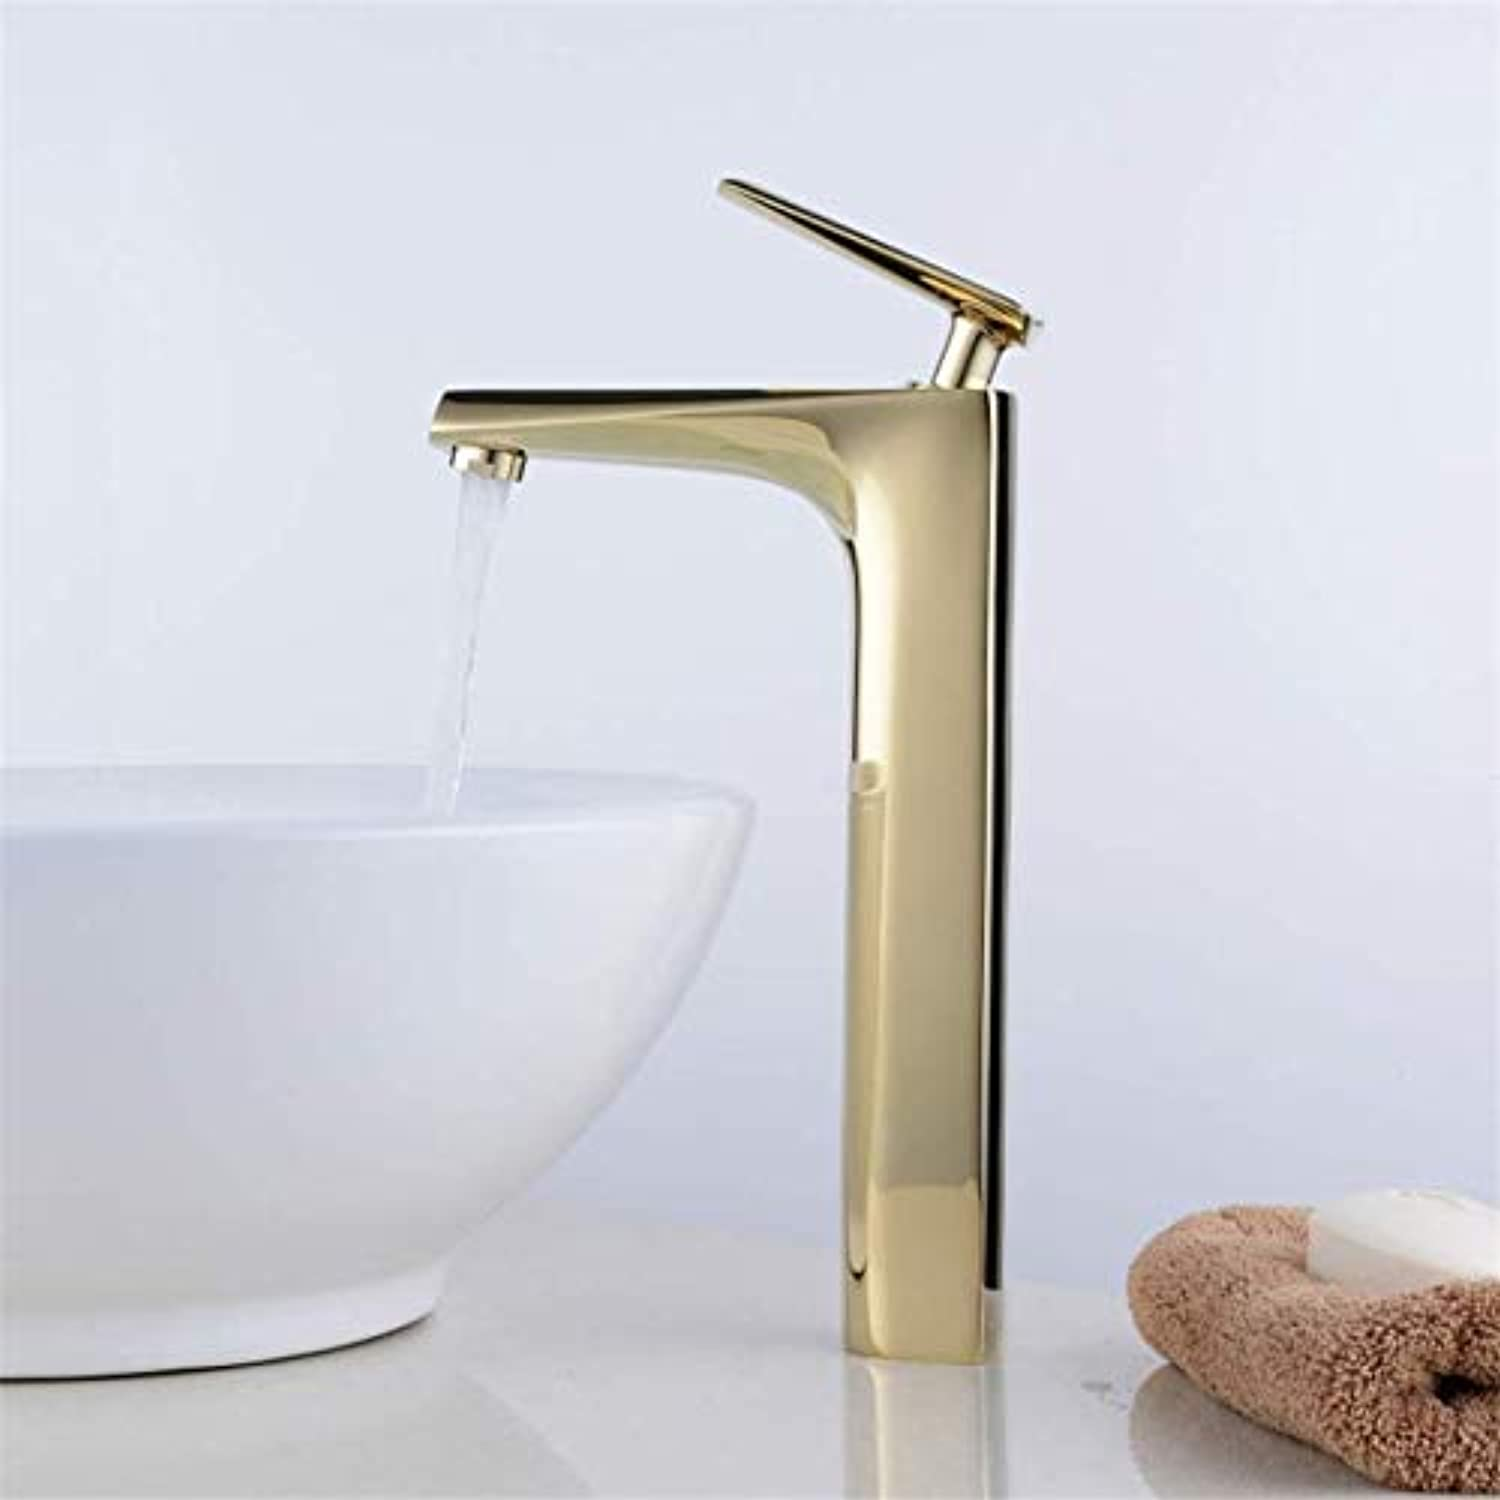 Stunning Polished gold Counter Basin Faucet Single Lever high Bathroom Sink Faucet